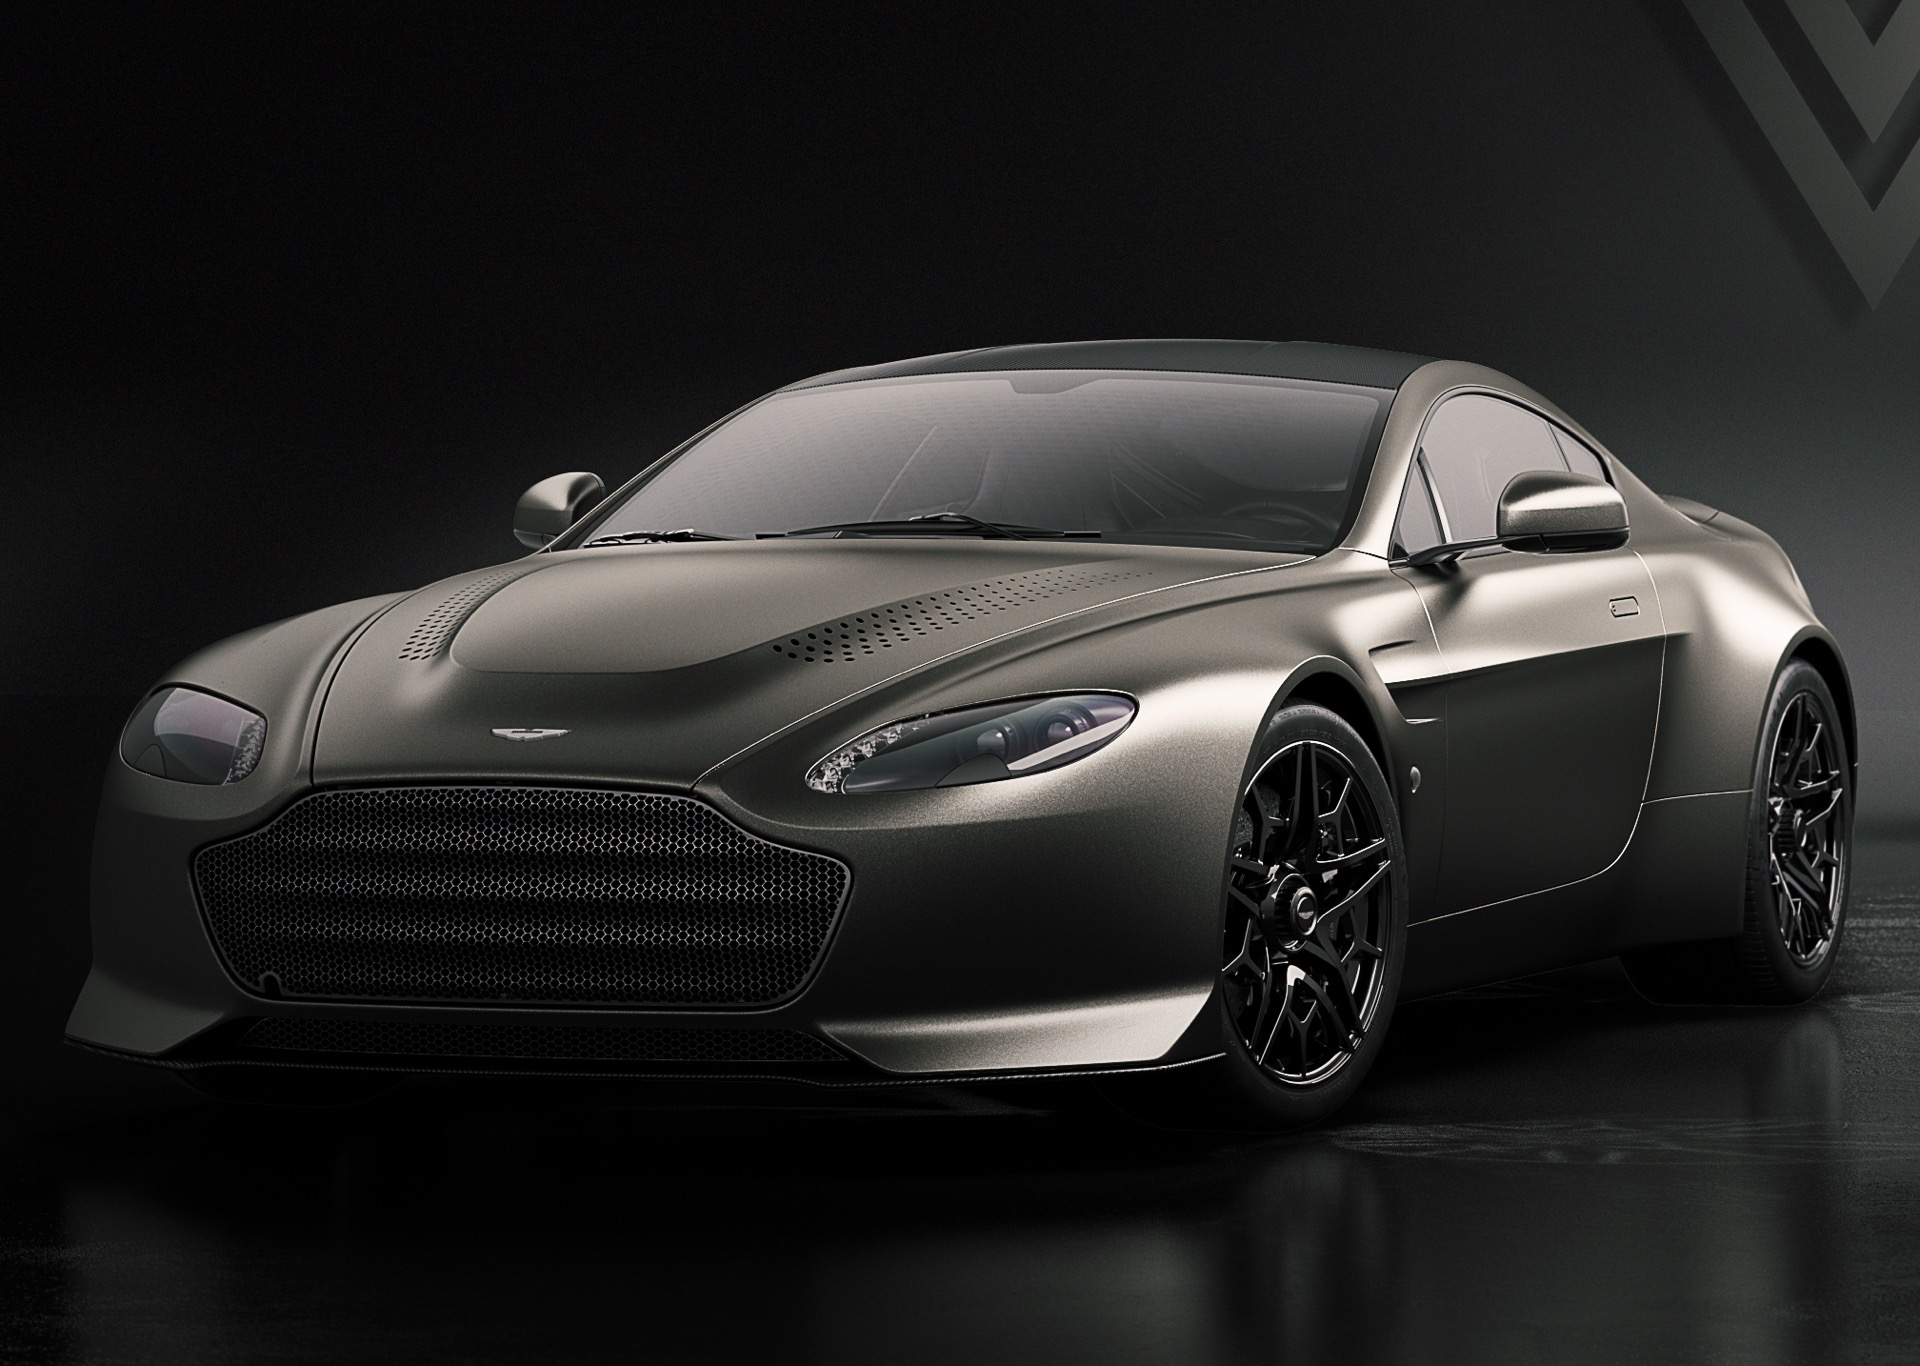 official aston martin v12 vantage v600 gtspirit. Black Bedroom Furniture Sets. Home Design Ideas